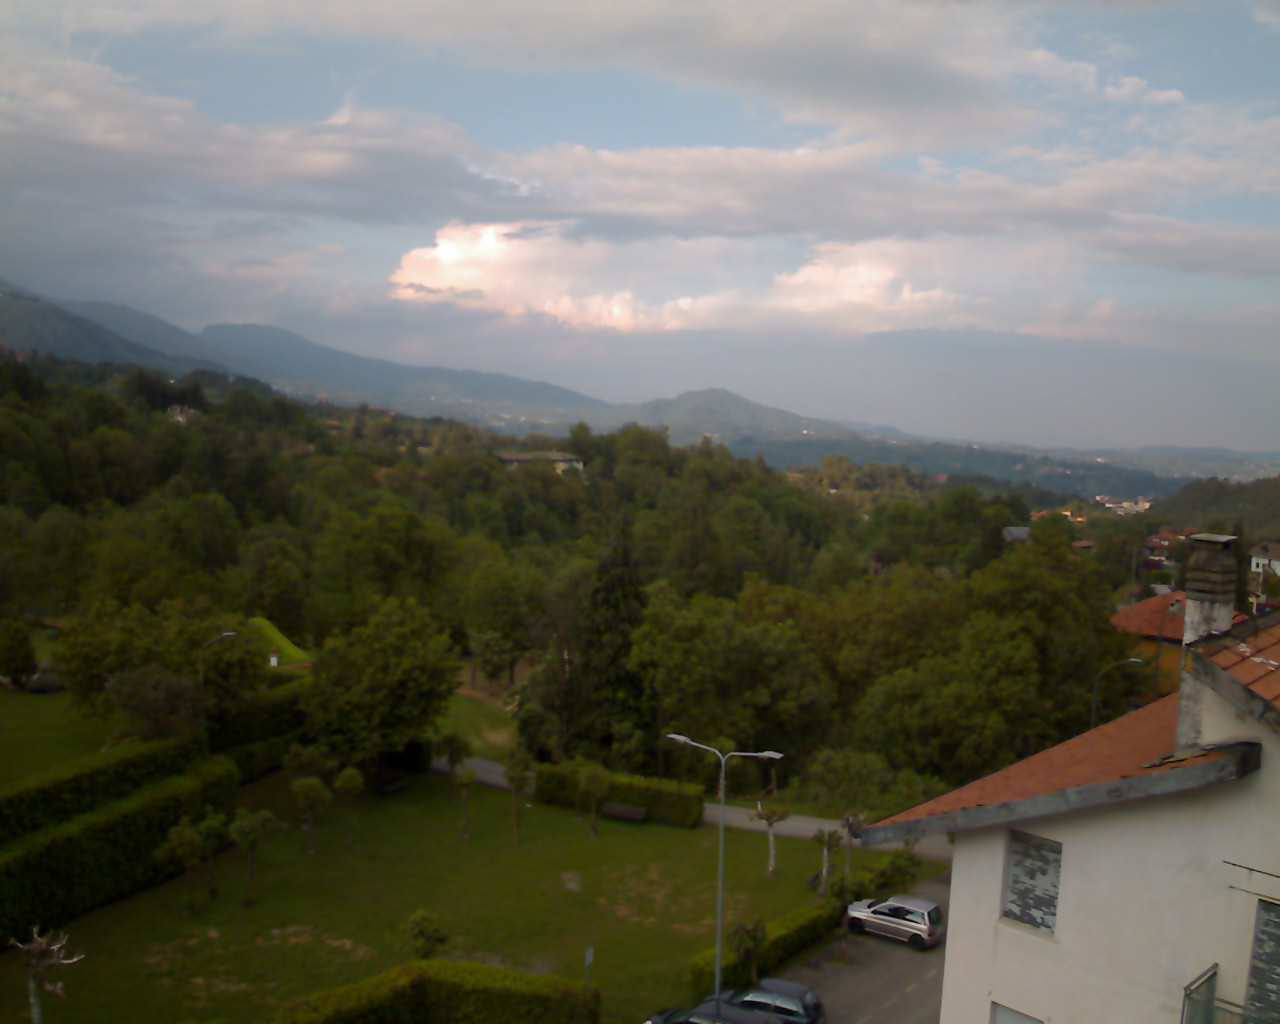 Comune di San Colombano Belmonte - webcam